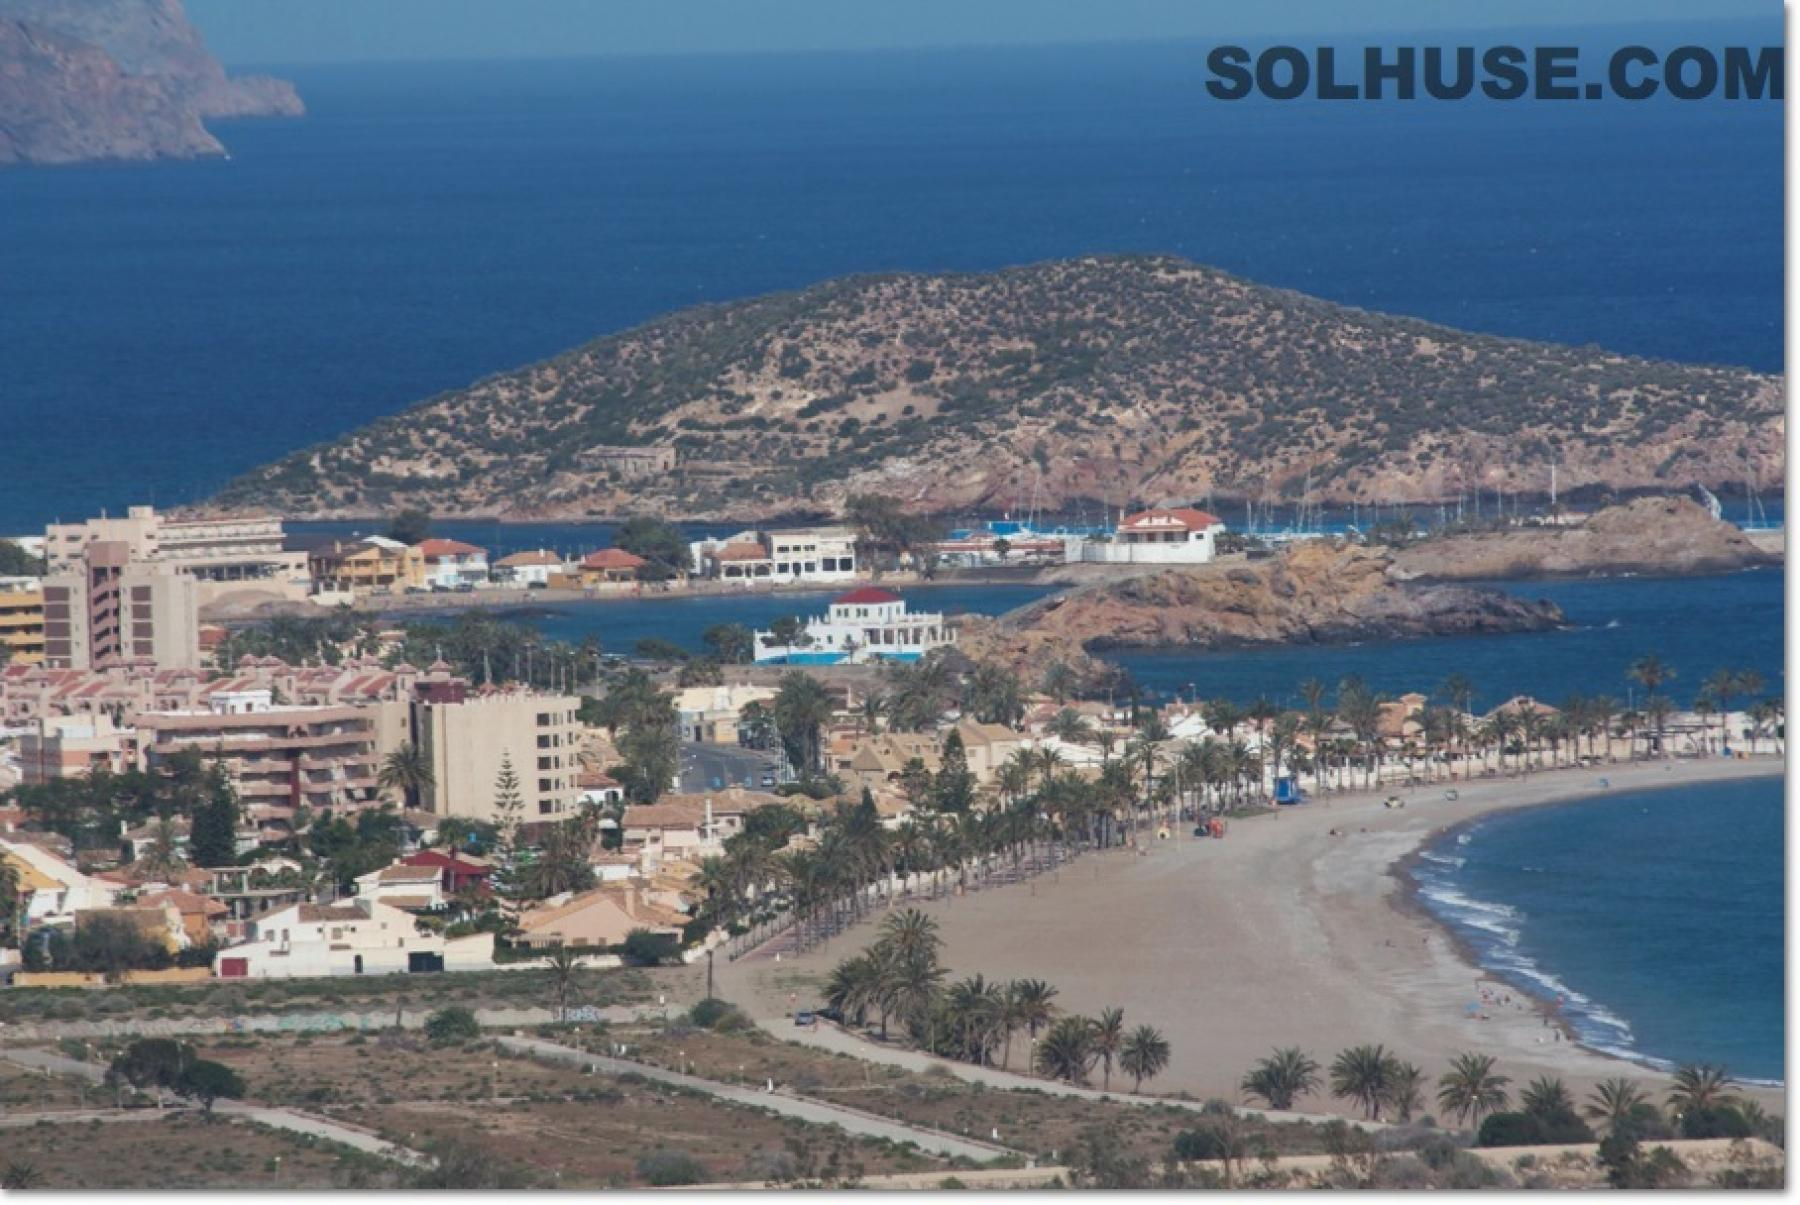 The Coastal area of Puerto de Mazarron